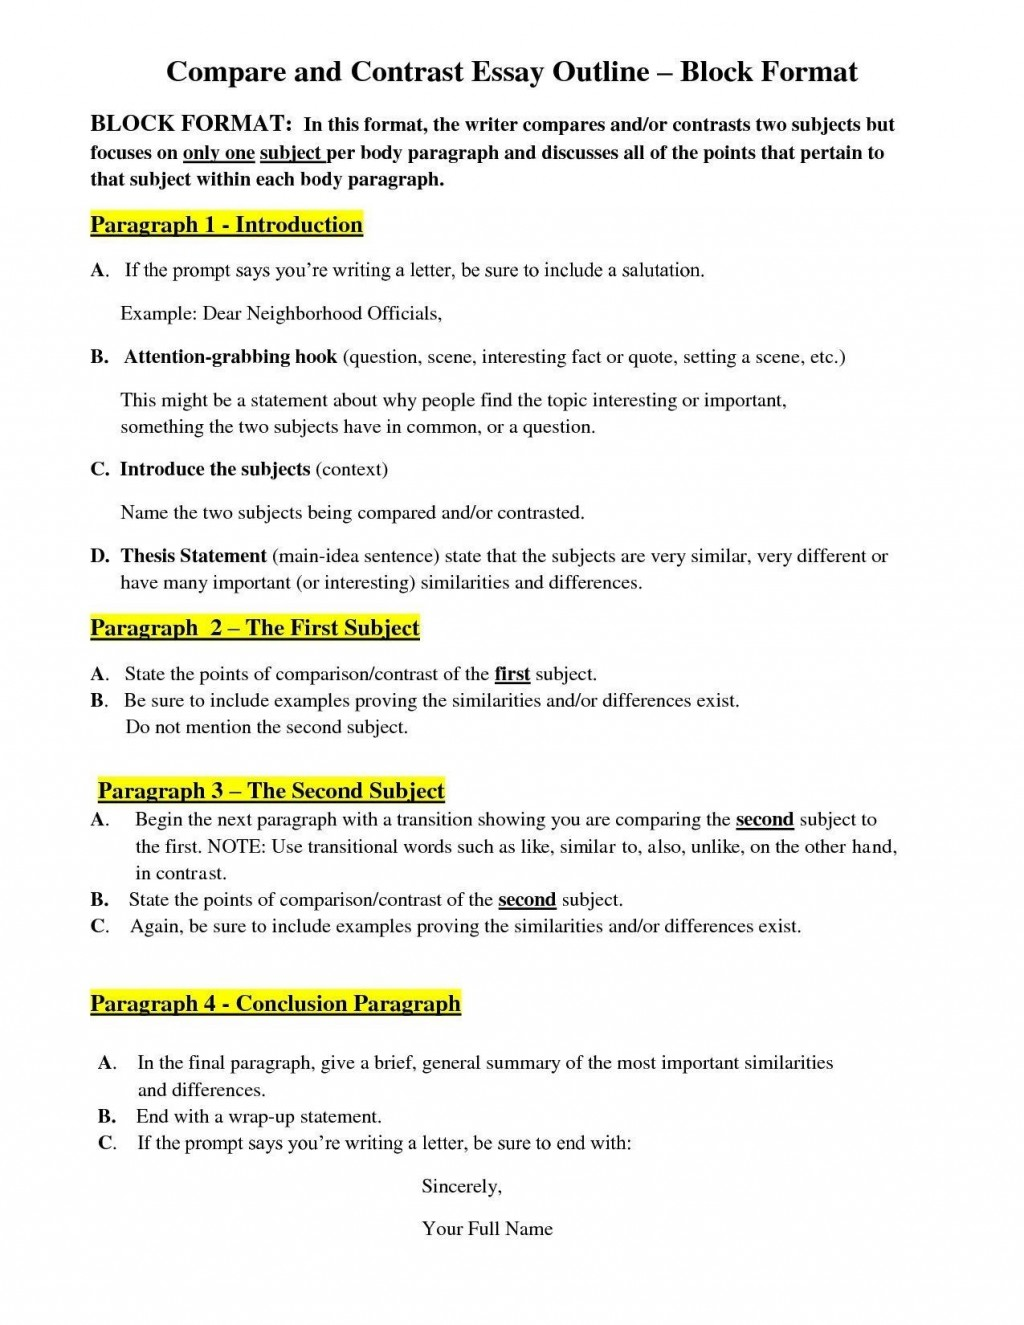 014 Essay Examplempare Andntrastmparison Best Examples Of Scenario In 6th Grade An Goo 3rd Food 5th Middle School Block Format Pdf High 4th Vs Striking Compare And Contrast Example For College Students Topics 7th Large